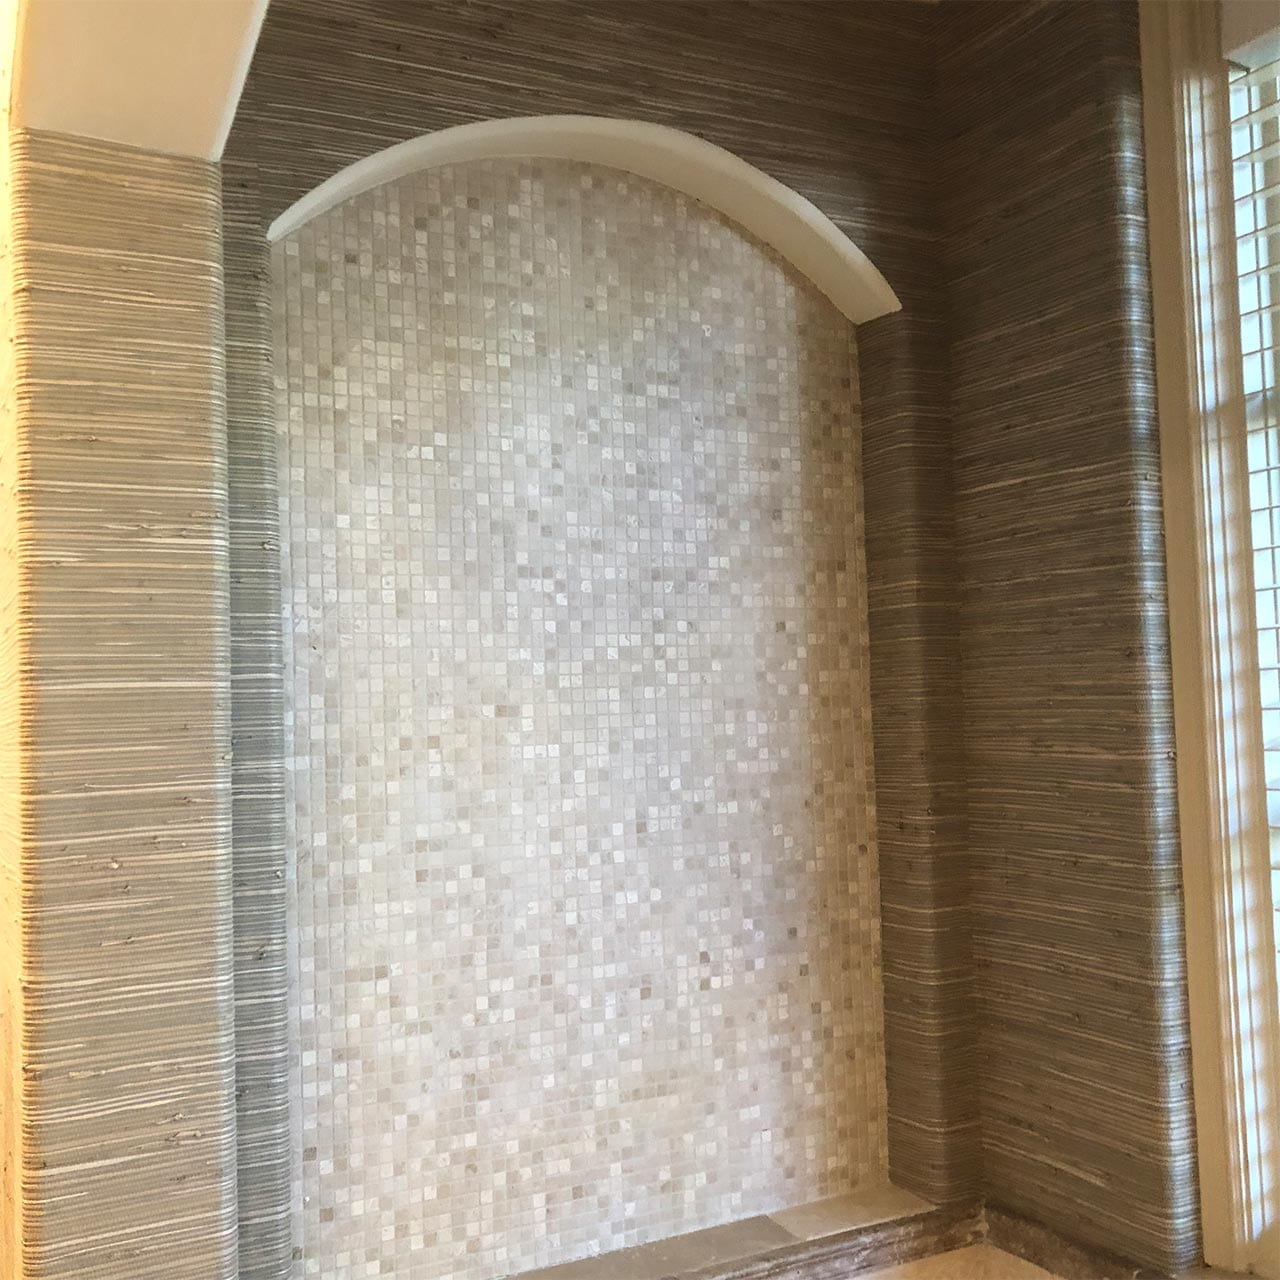 Bathroom Wall Coverings | Bathroom Wall Coverings Texas Paint And Supply Dallas